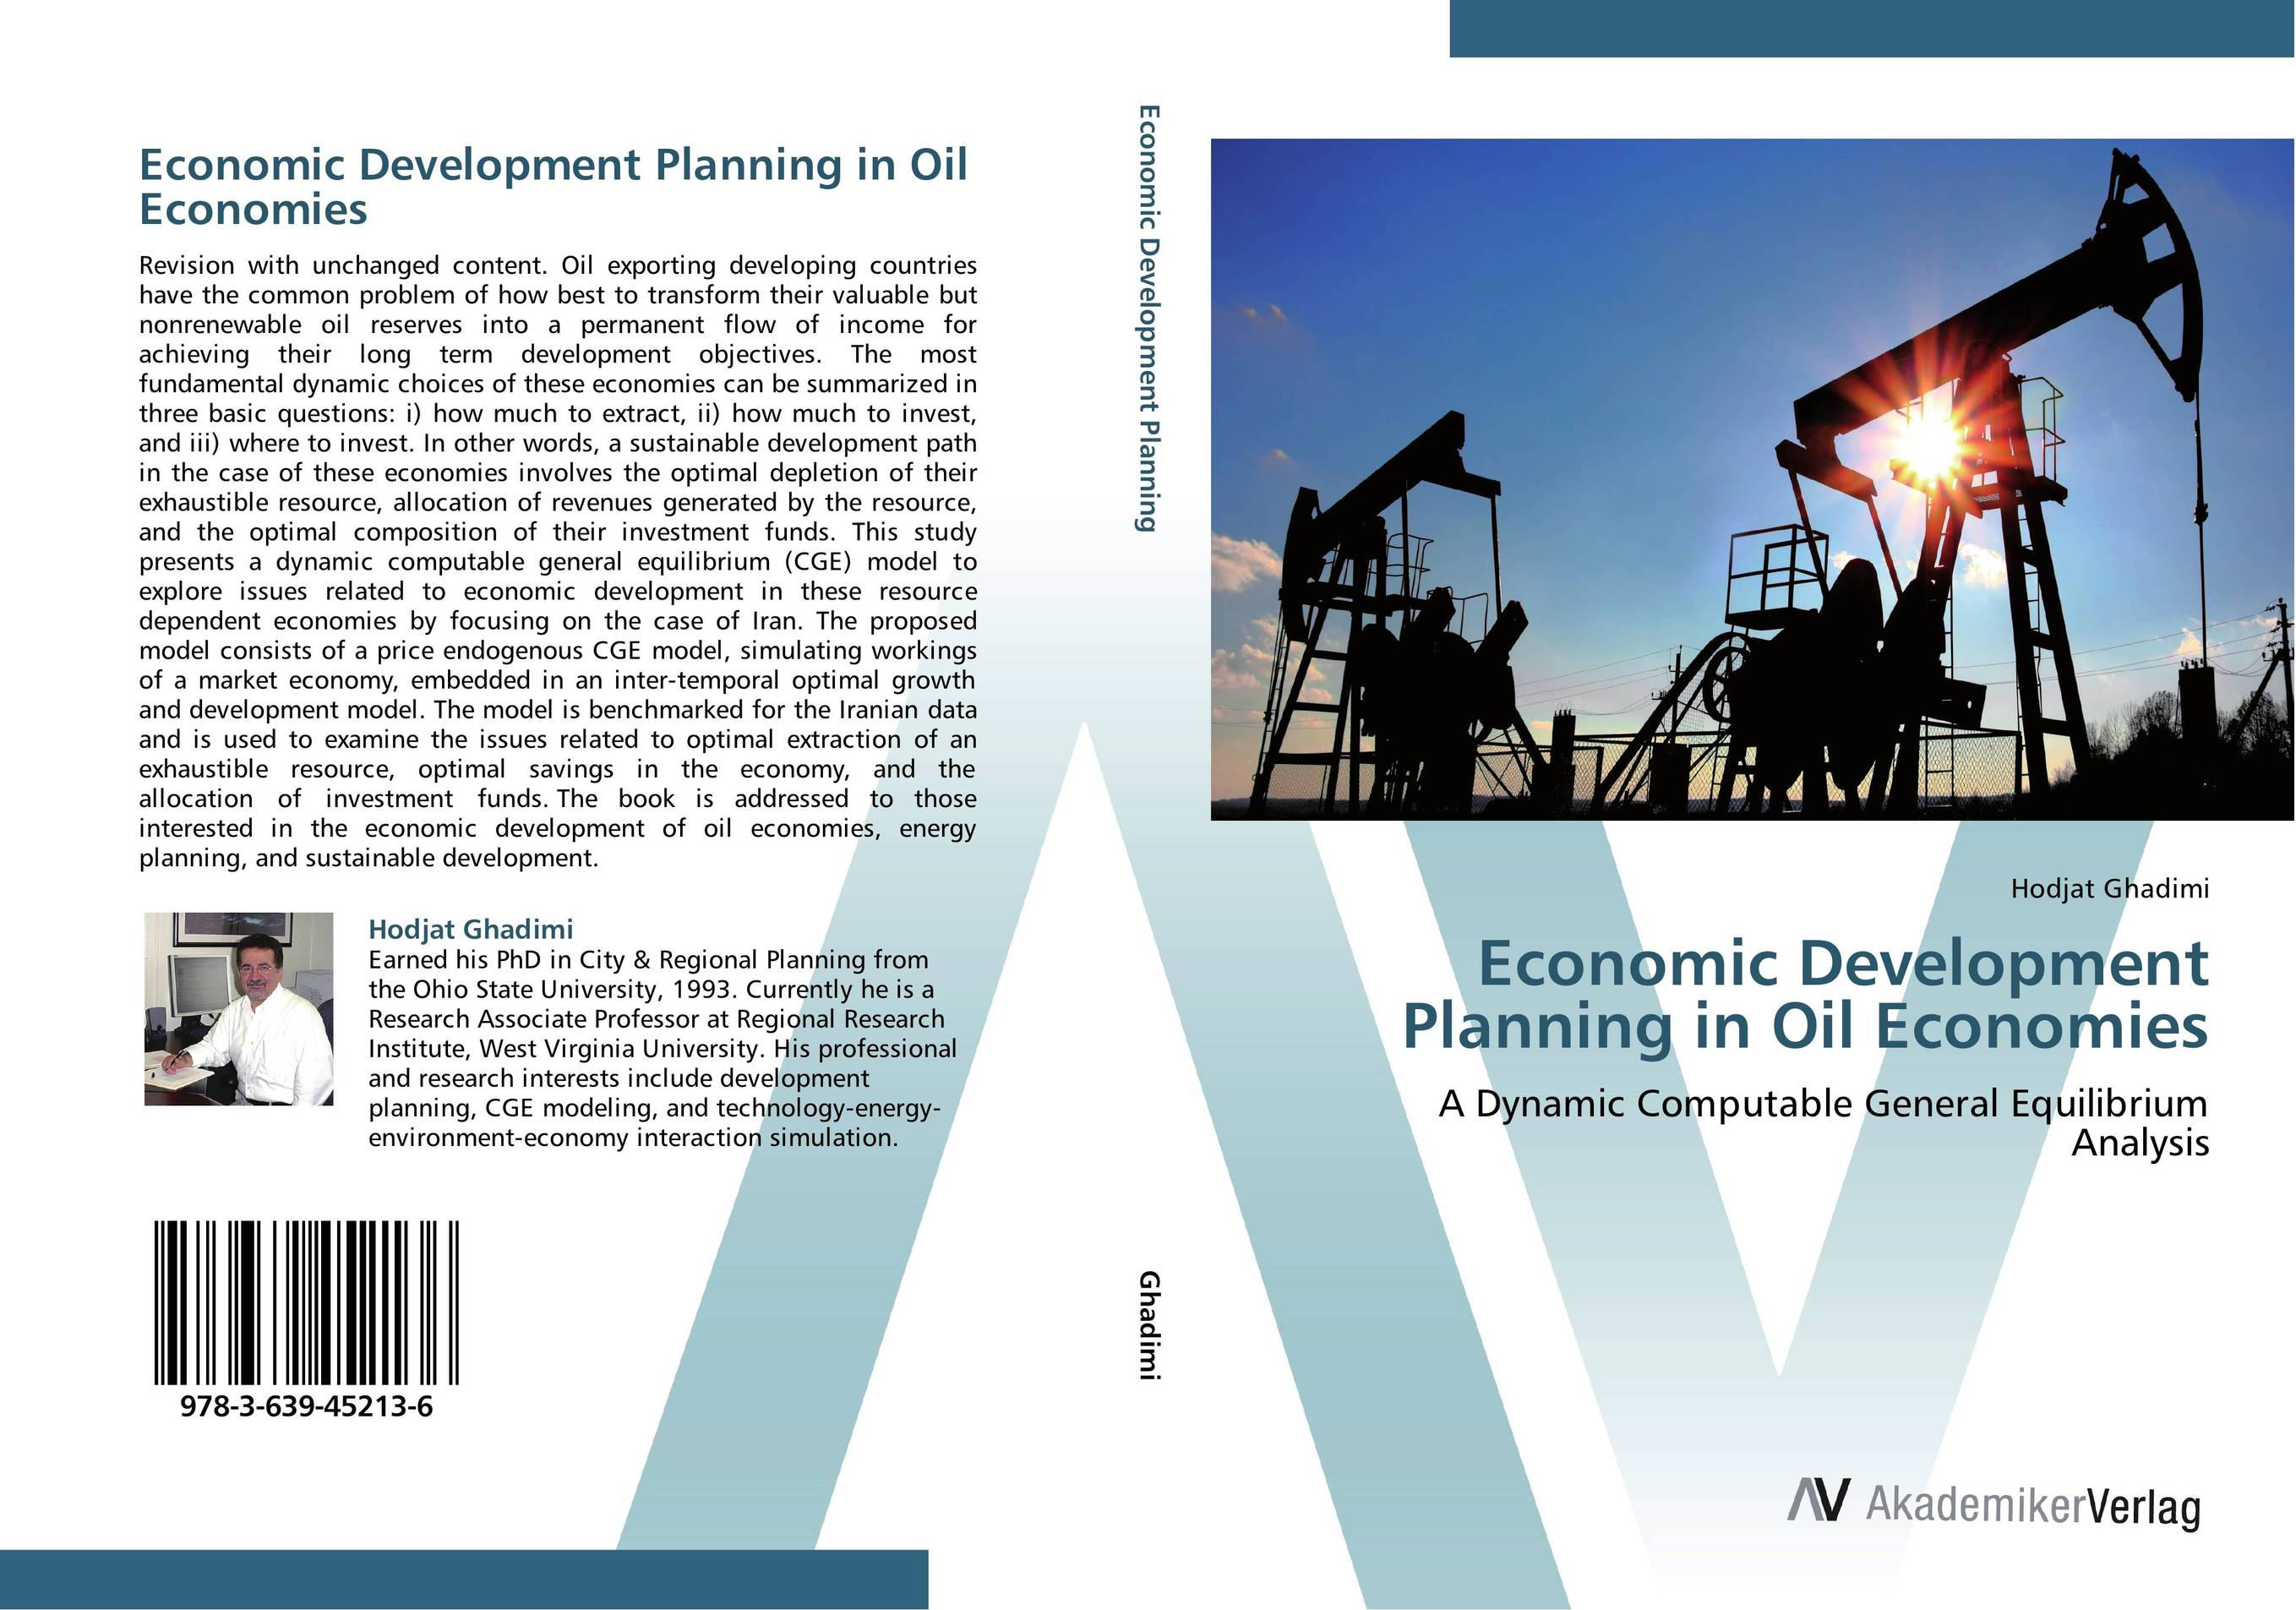 Economic Development Planning in Oil Economies xuan liu time consistency of optimal policy in a small open economy